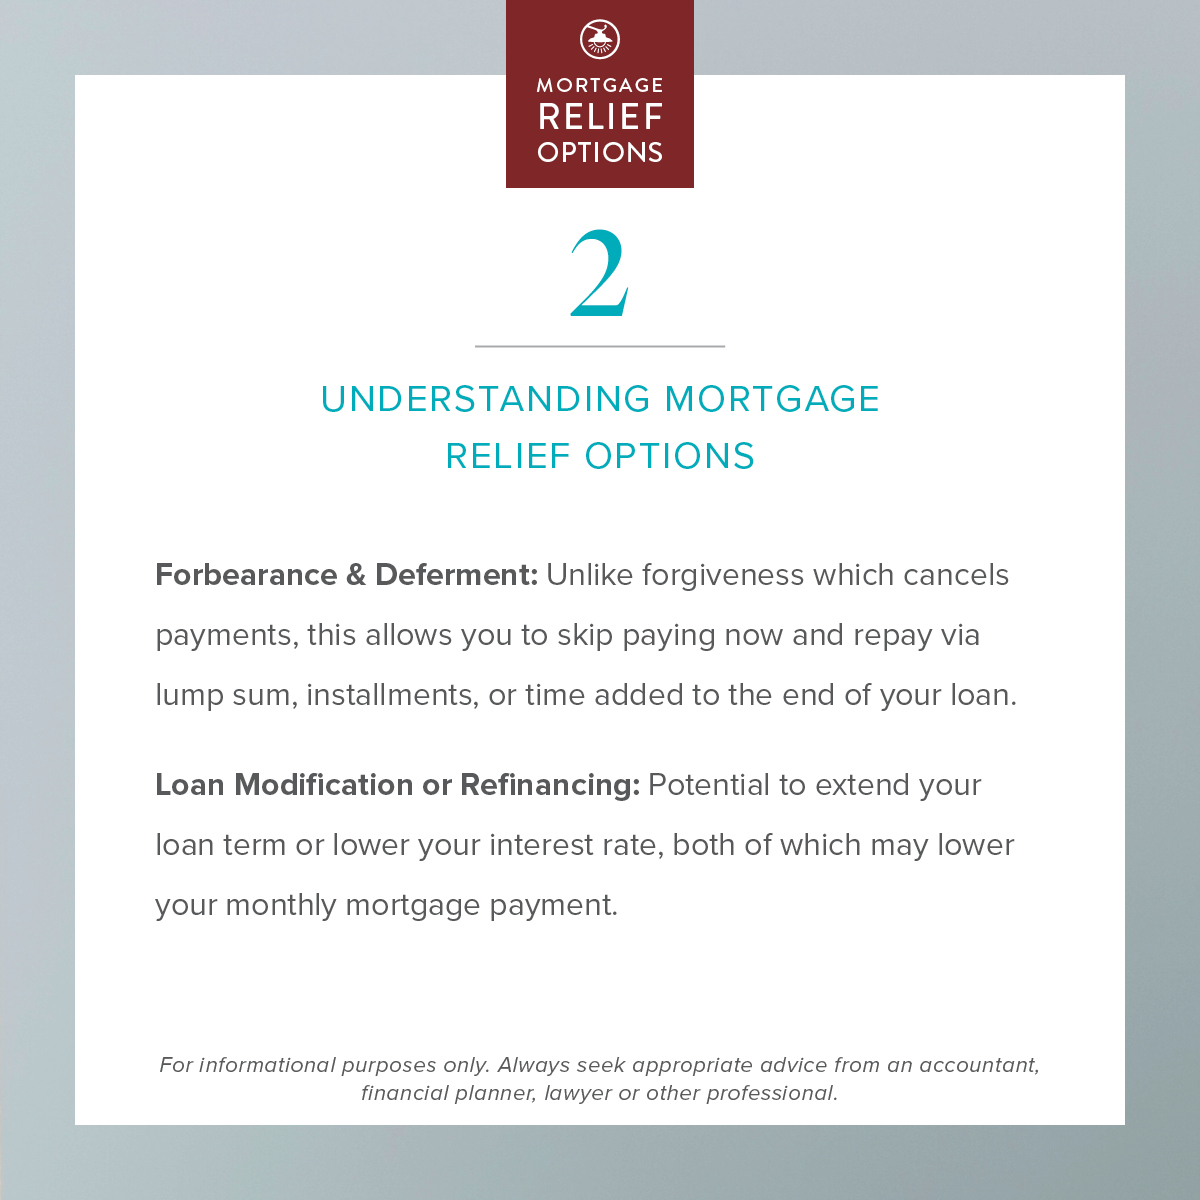 2020-MortgageReliefOptions_SOCIAL_2